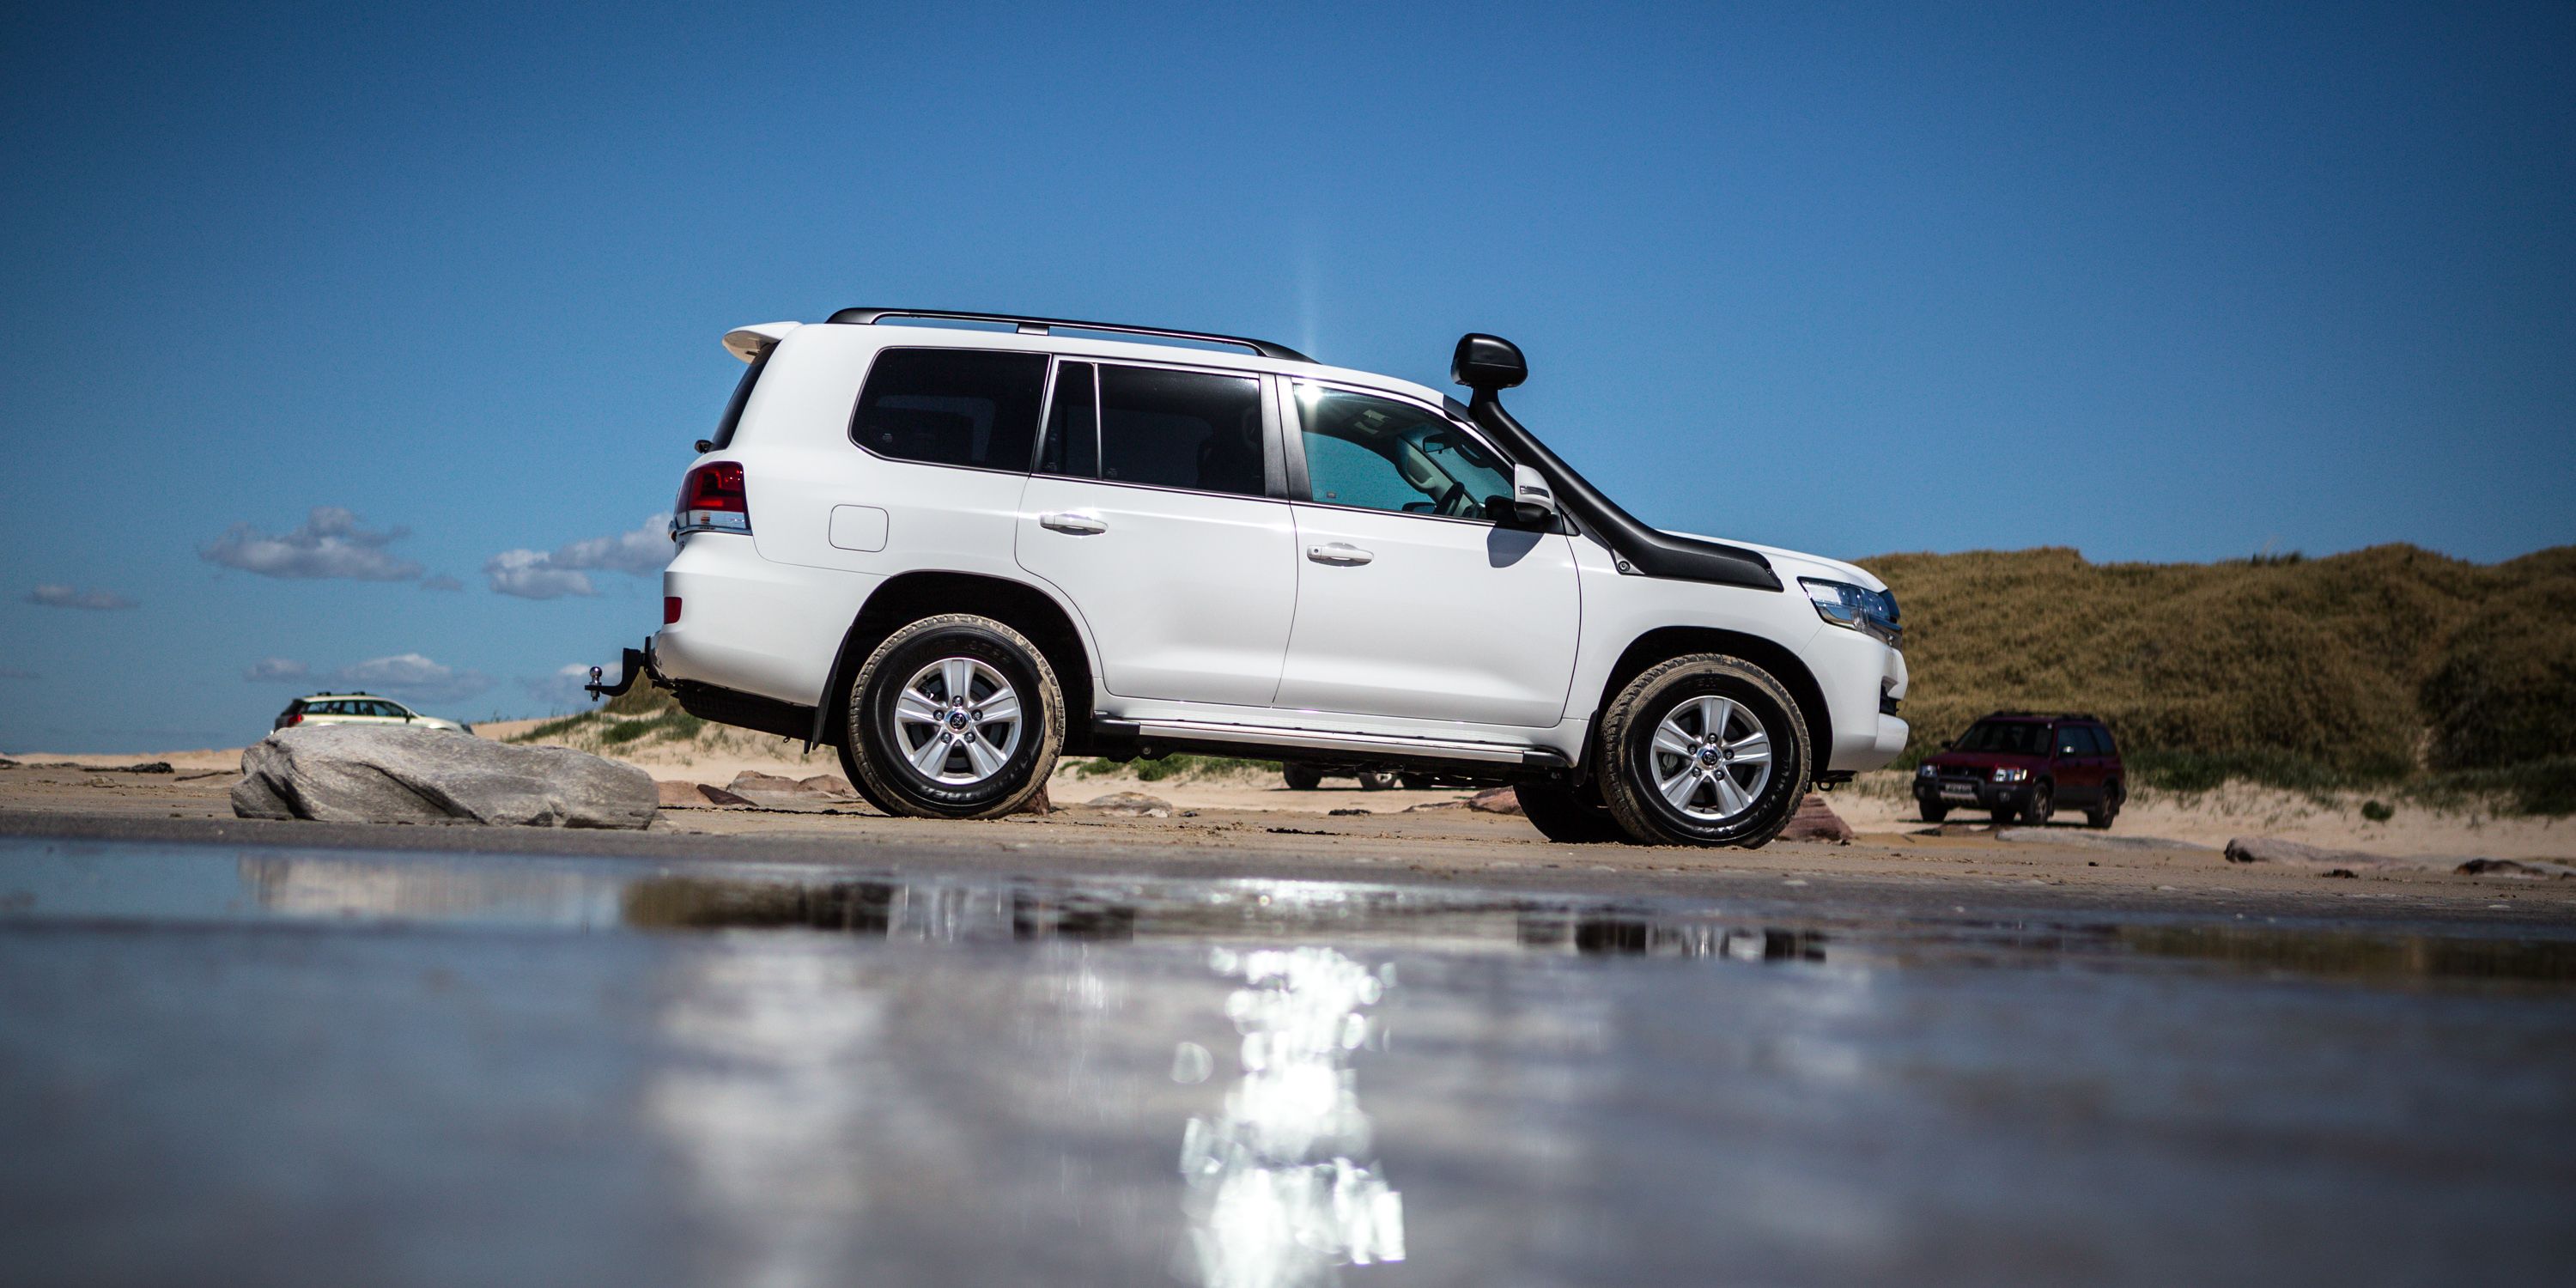 2016 Toyota LandCruiser 200 GXL Diesel review - photos   CarAdvice